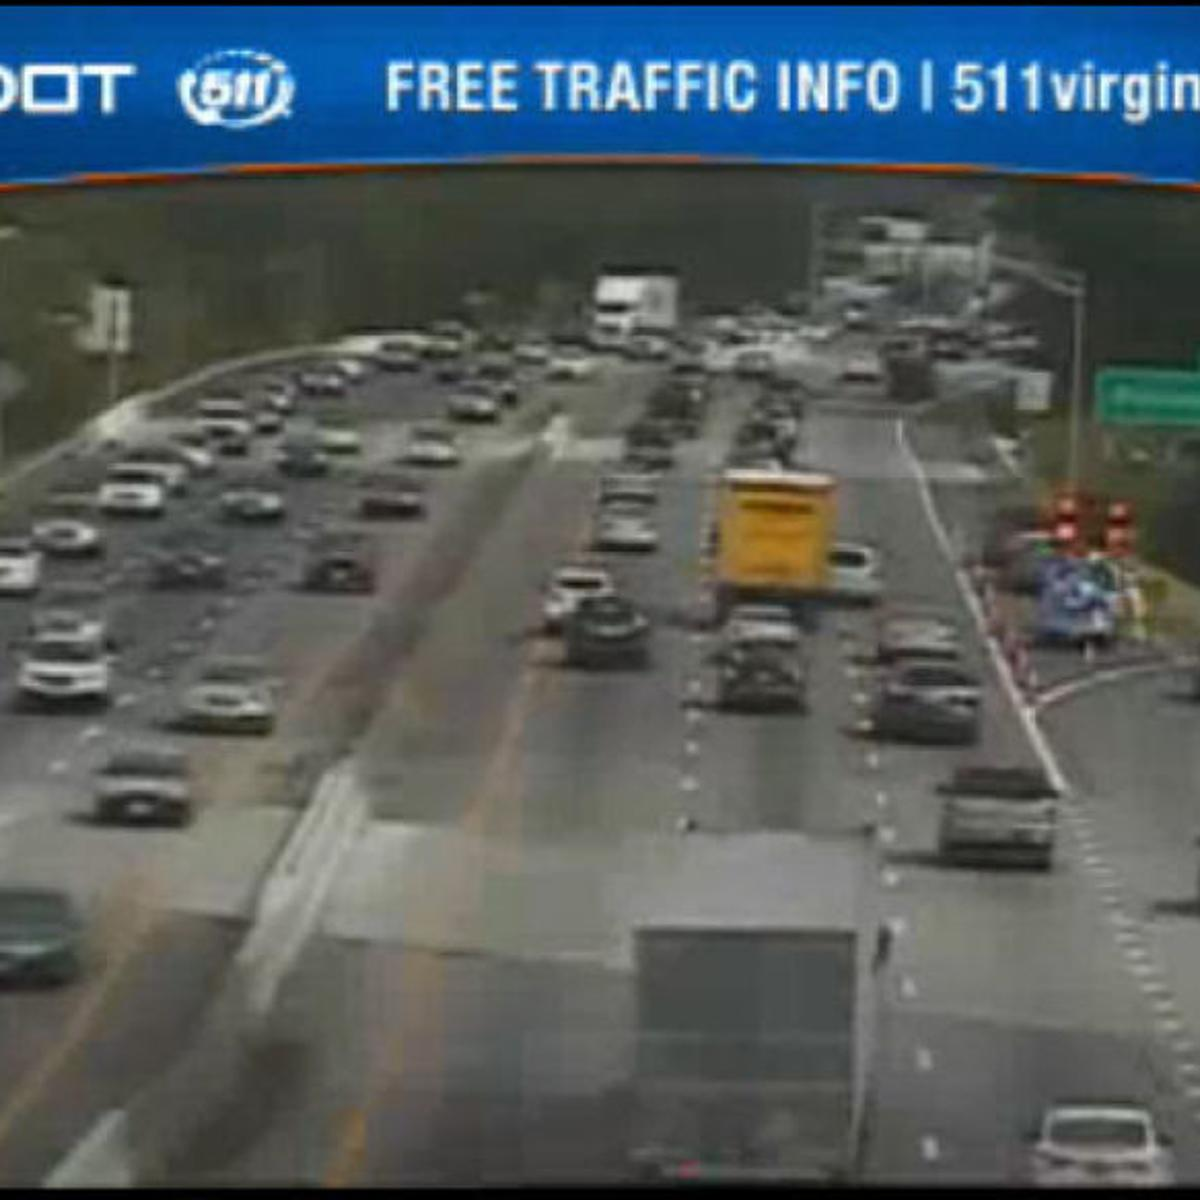 TRAFFIC: Accident on I-95 South in Richmond cleared | Latest News